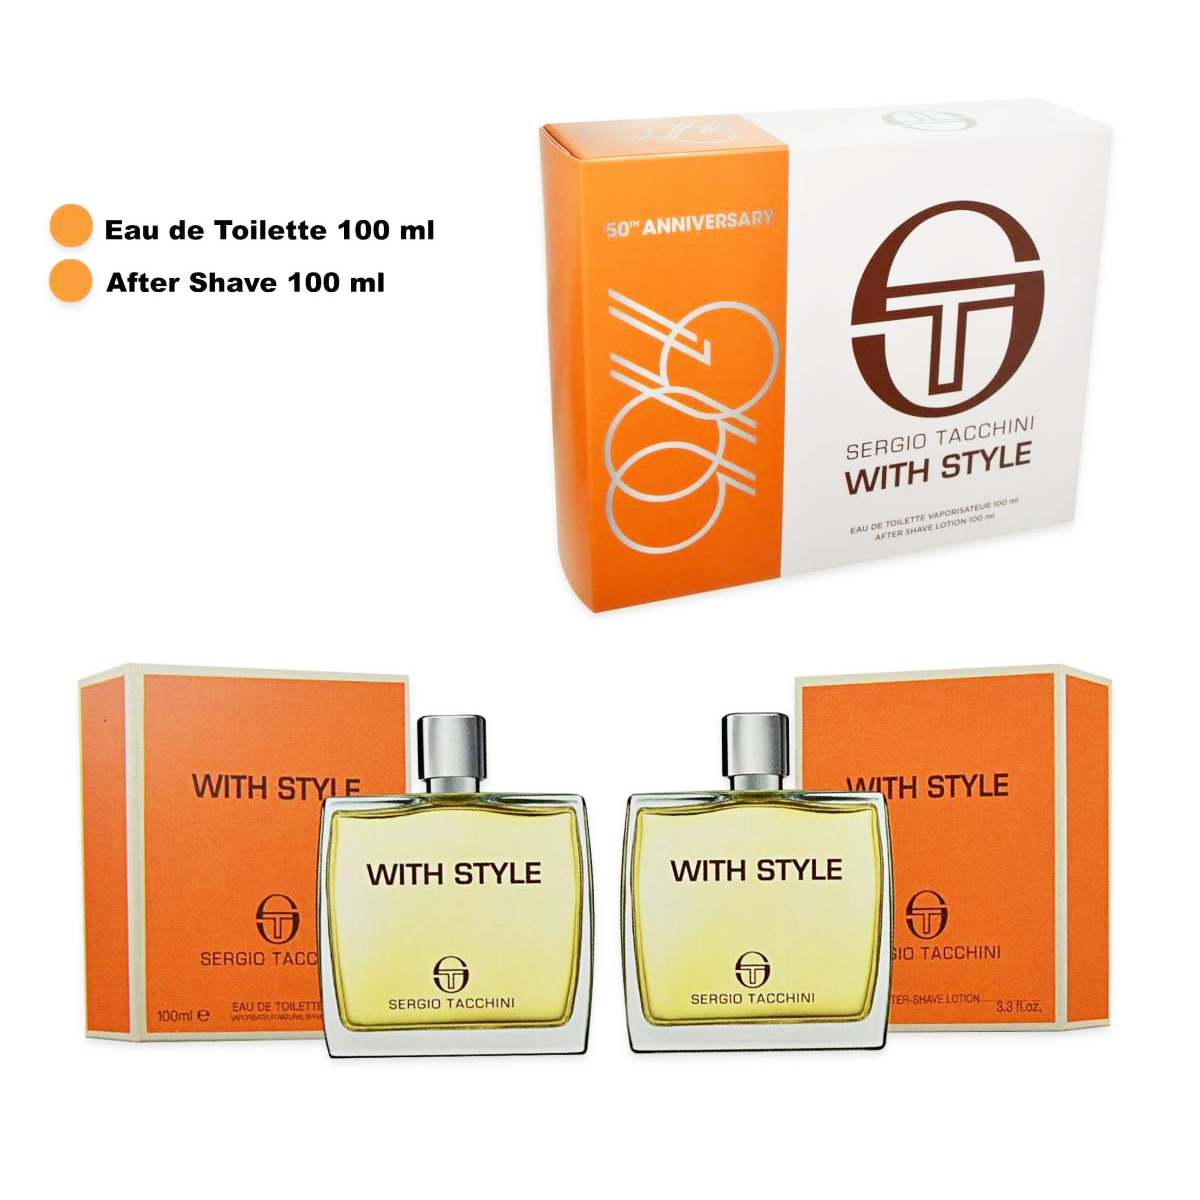 Sergio Tacchini  Cofanetto with style  eau de toilette 100 ml  after shave lotion 100 ml